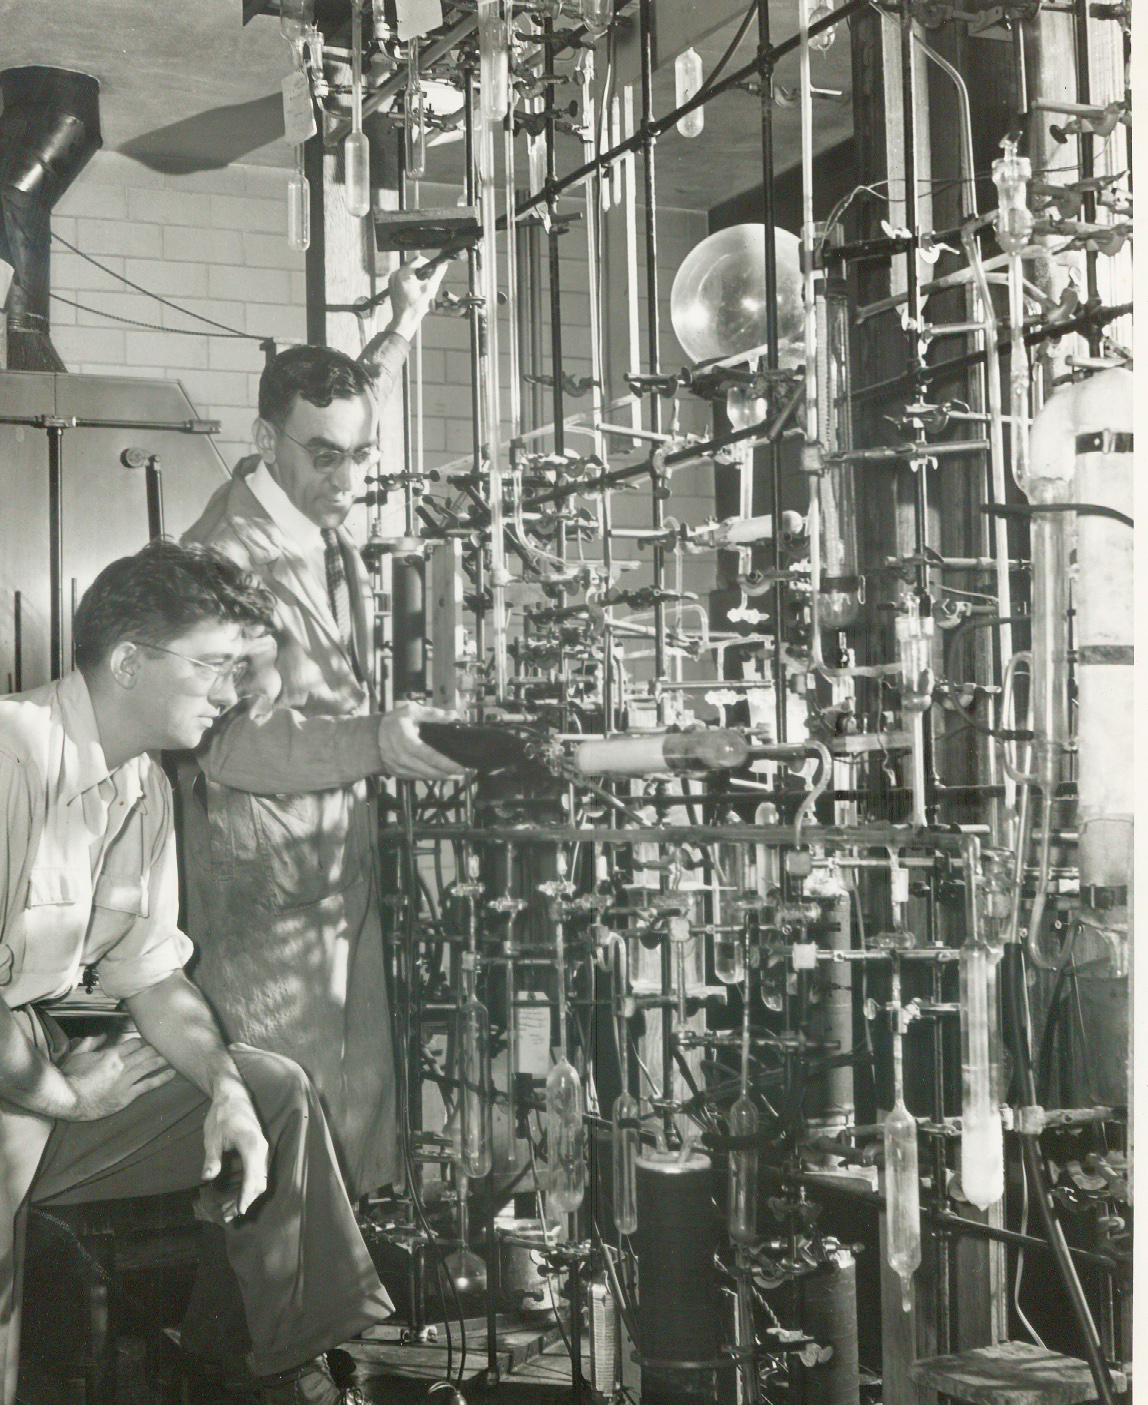 Image courtesy of Kristen Yarmey | Pennsylvania State University archives. (Featuring Joseph Simons, inventor of electrochemical fluorination, one method used by 3M to manufacture PFASs, including PFOA and PFOS beginning in the late 1940s.)